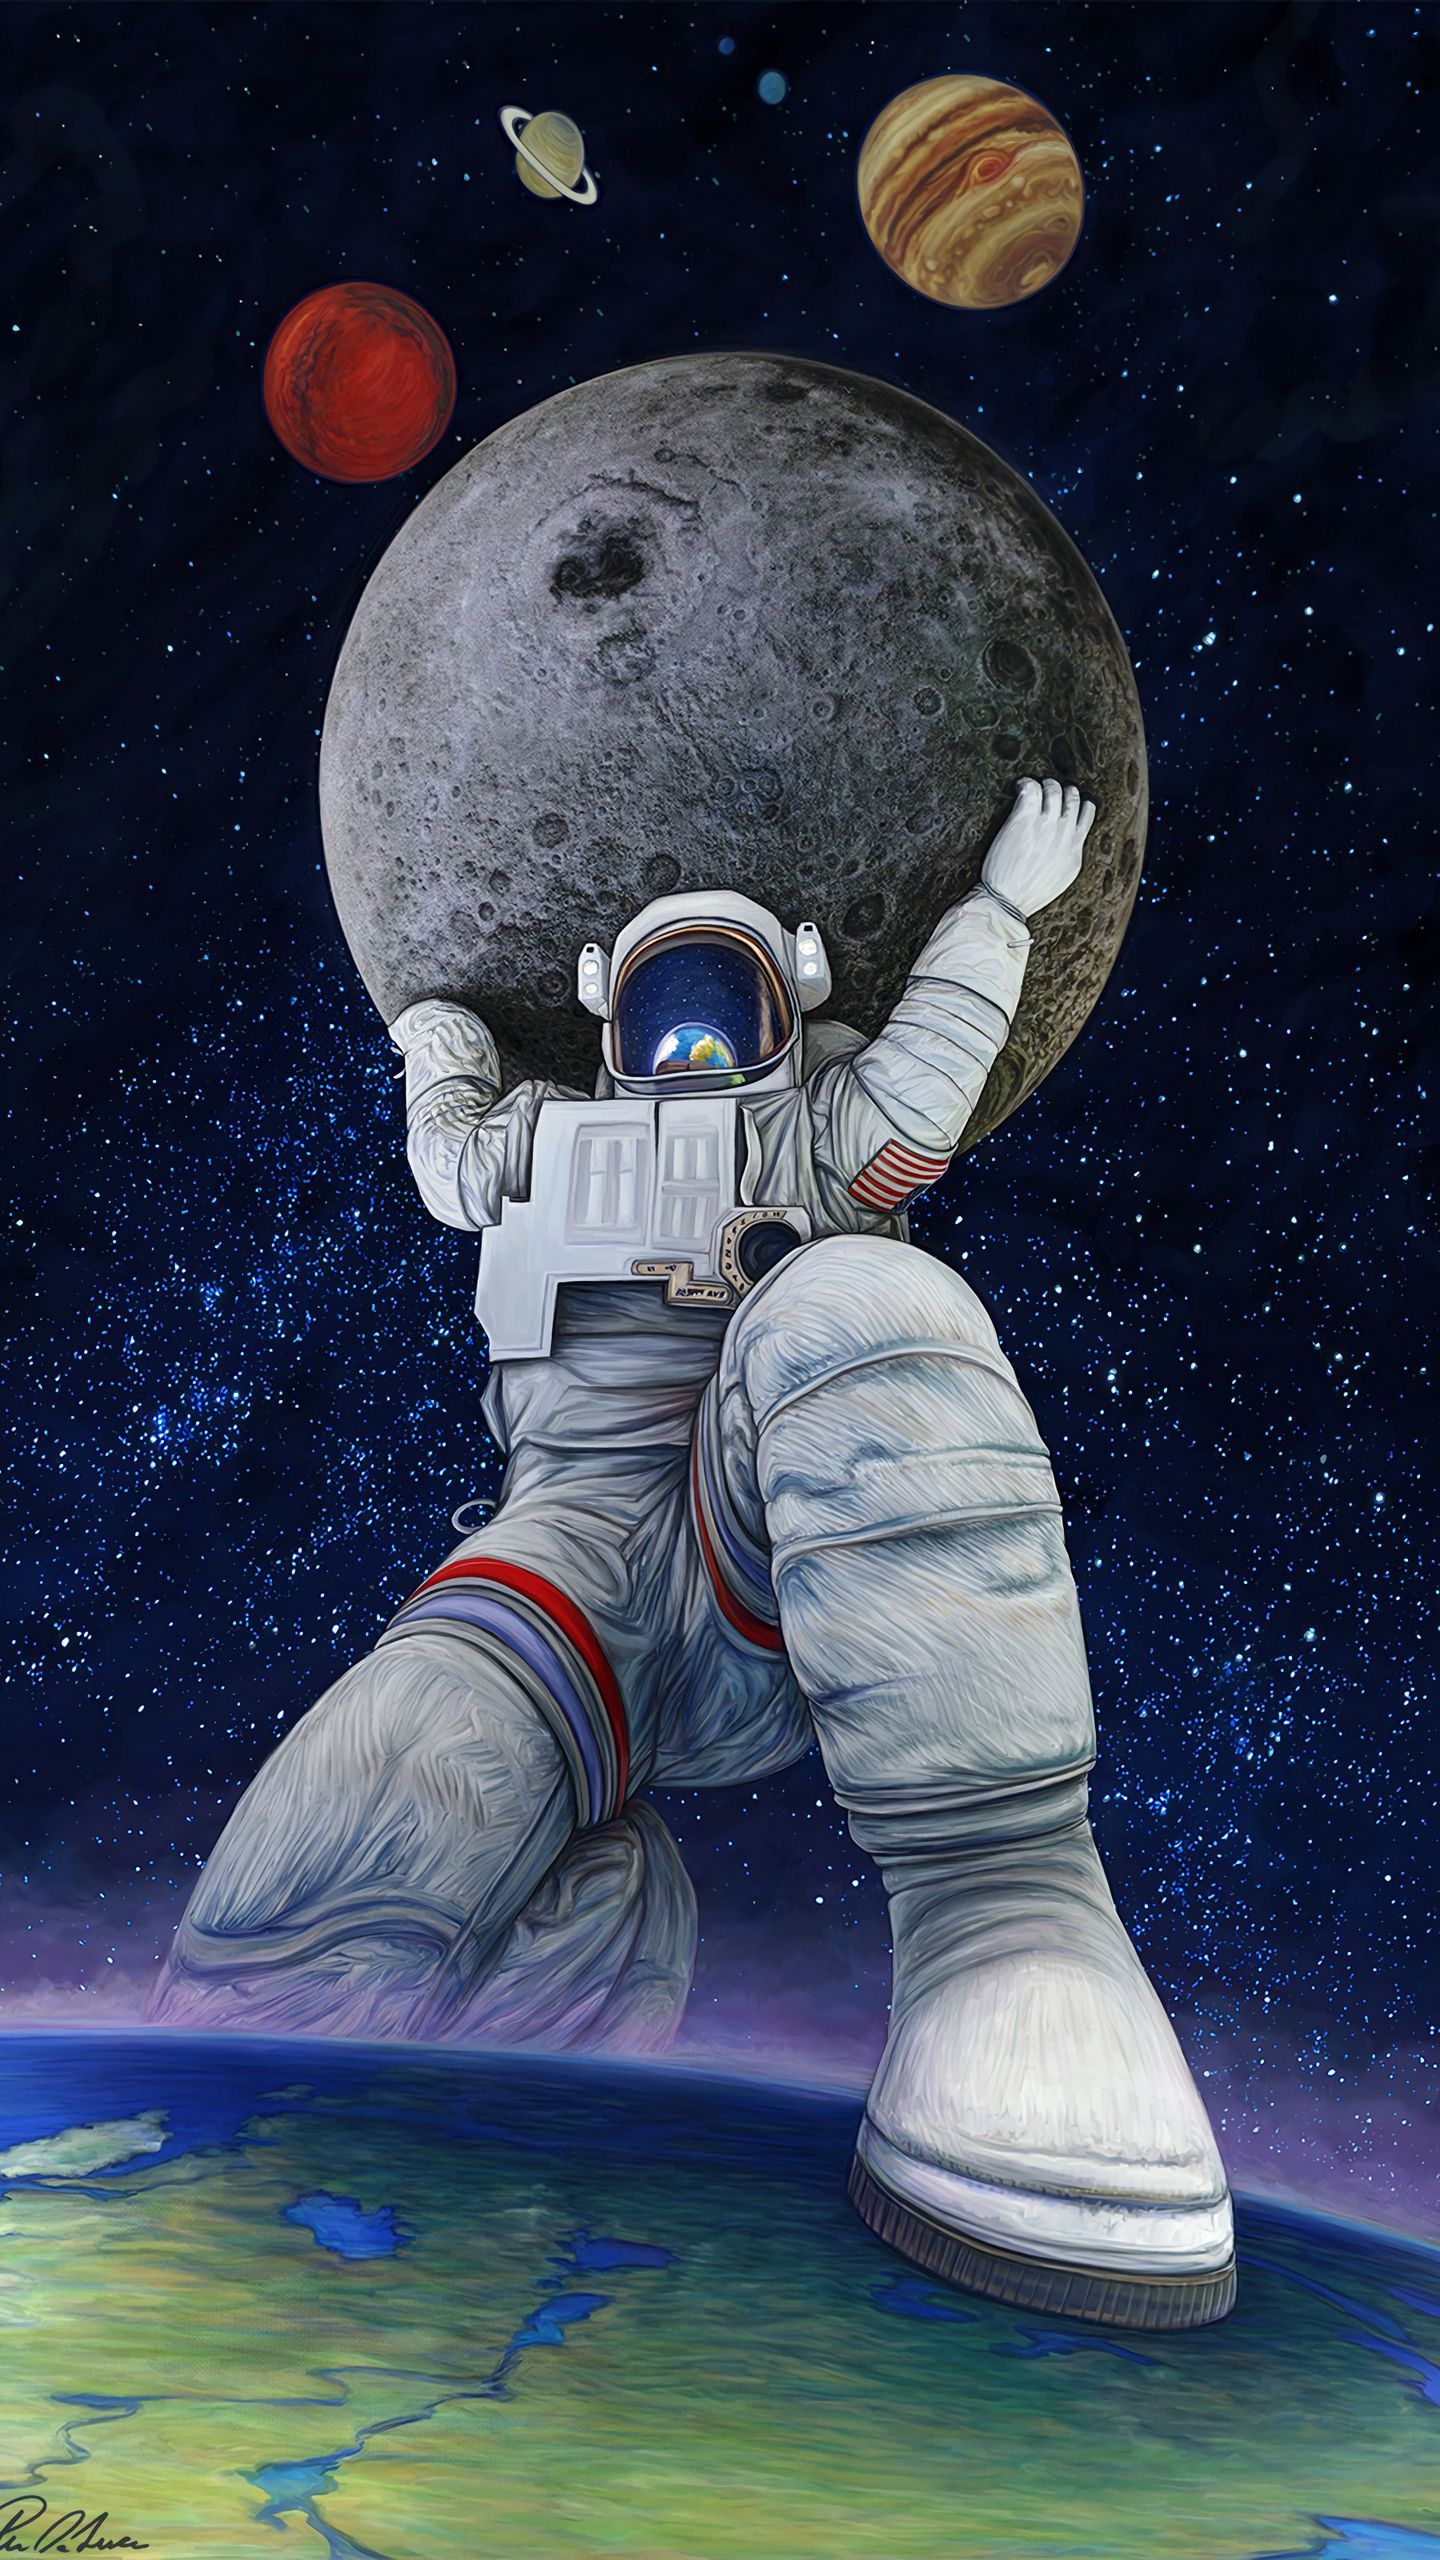 See My Collection Of Amazing Mobile Phone Art Wallpapers Hd Get Instant Access Free Art Smartphone C Astronaut Wallpaper Art Wallpaper Astronot Wallpaper